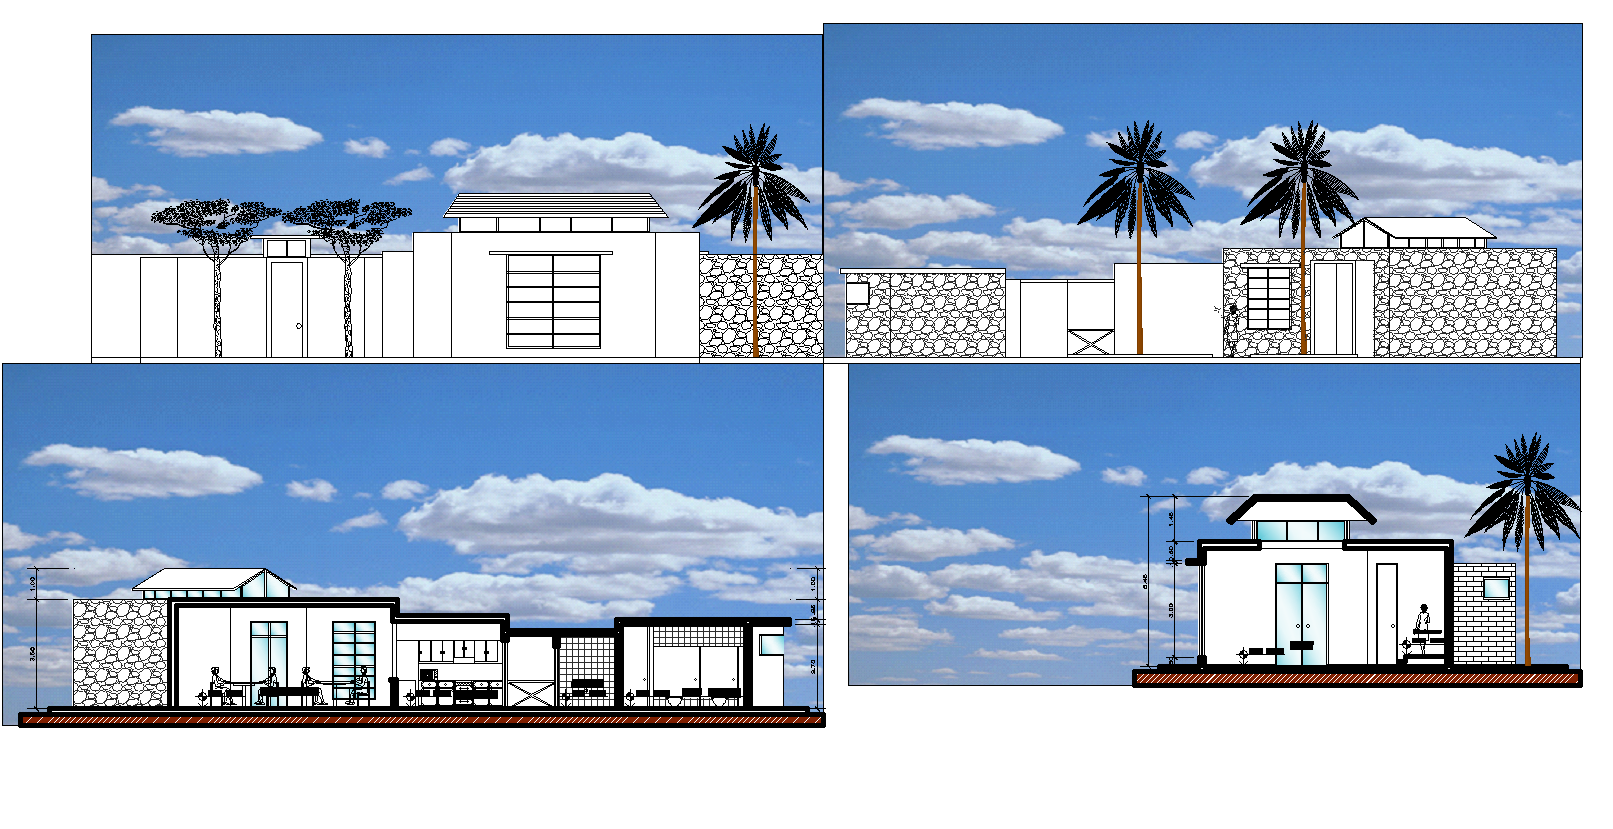 City offices and cultural plan elevation detail dwg file.